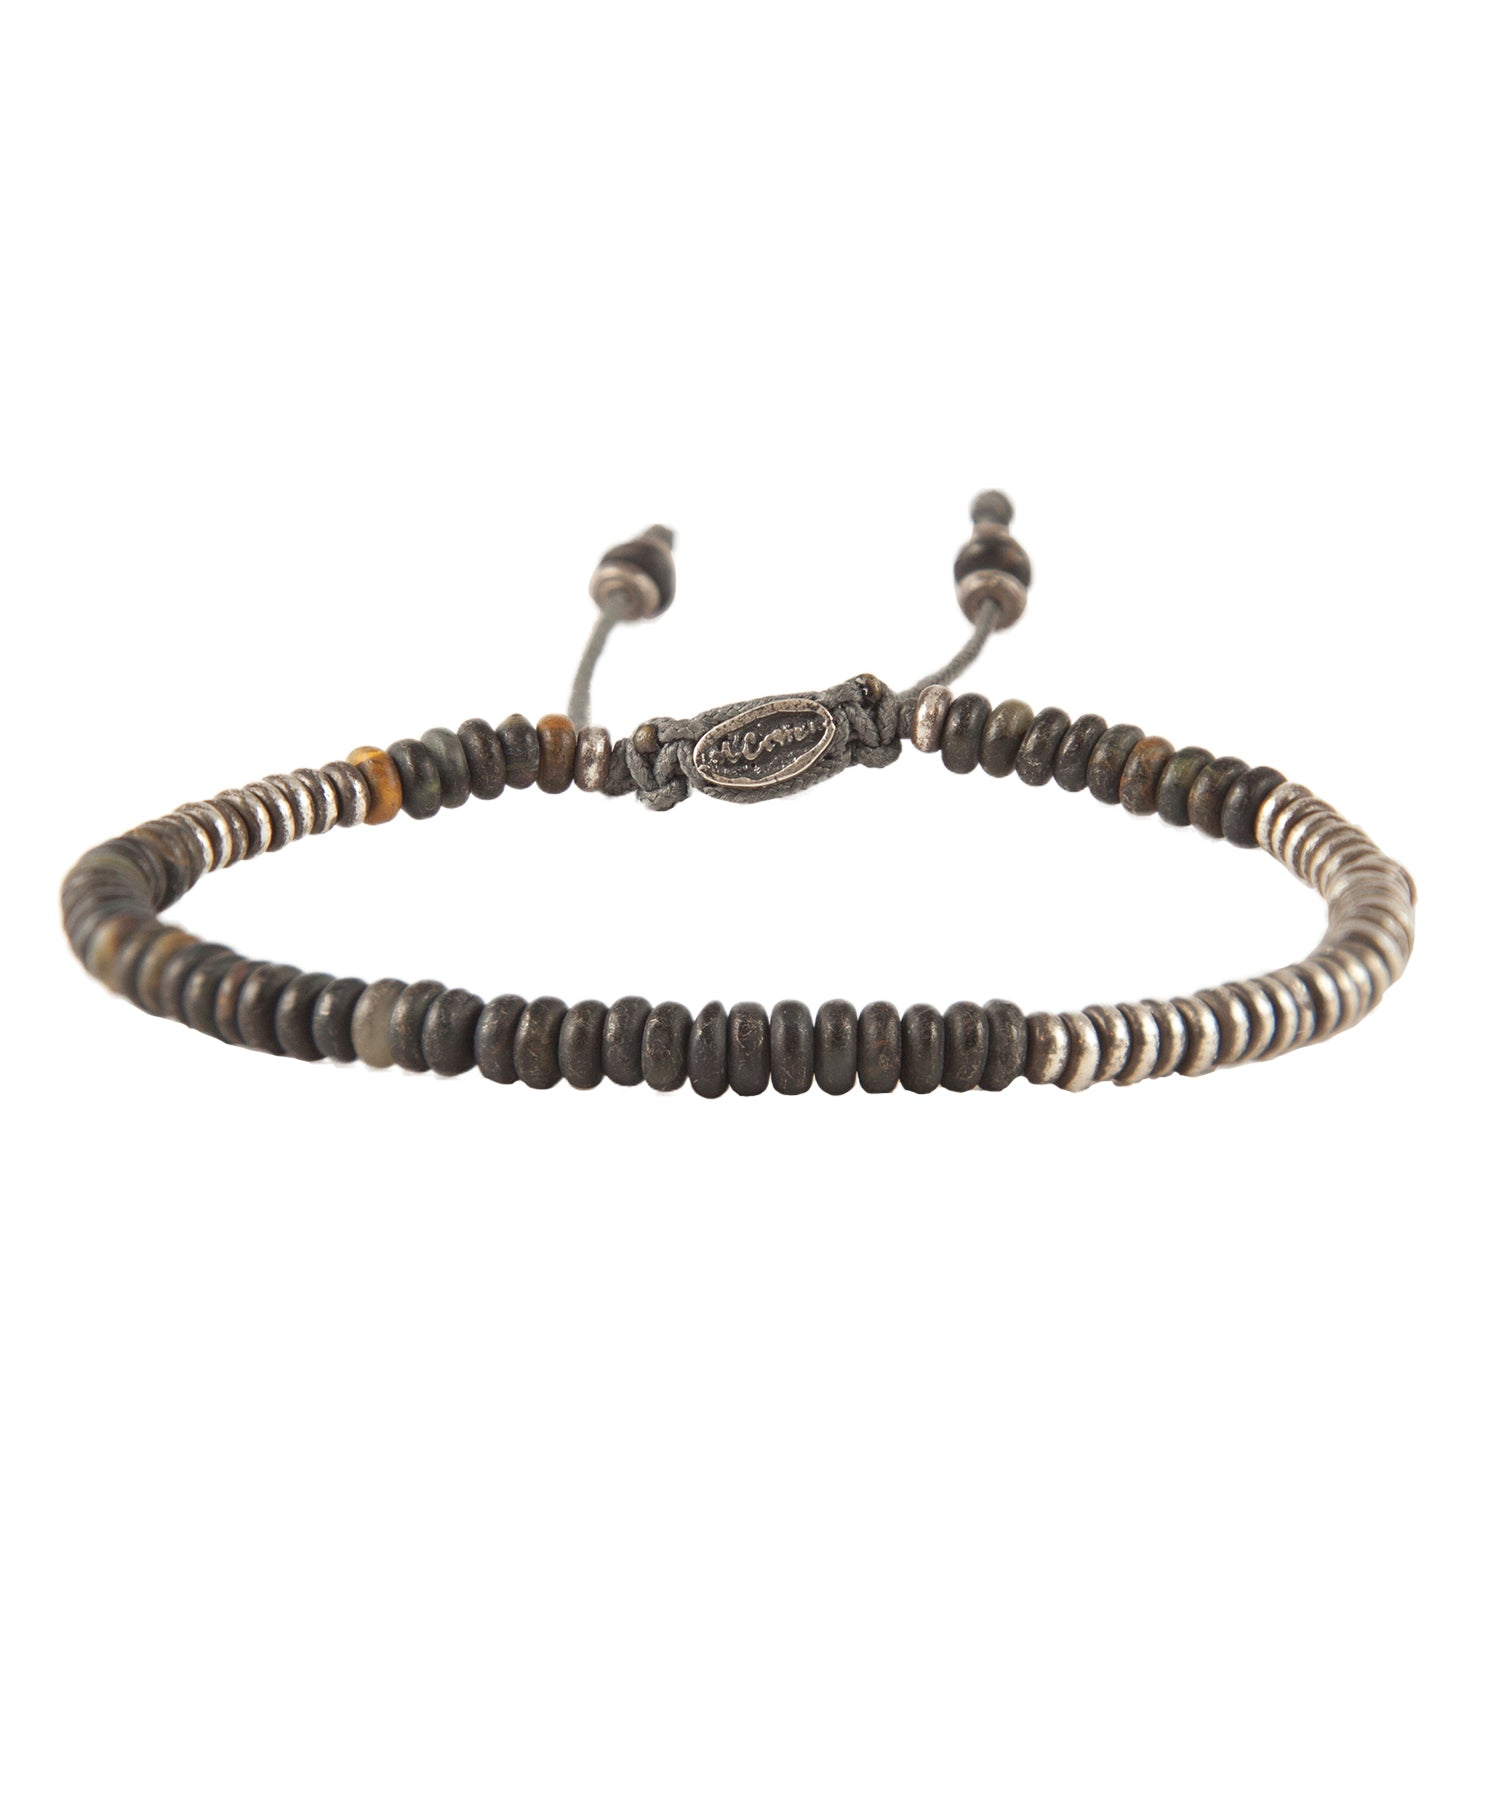 M. Cohen Ingot Bracelet in Blue Tiger Eye